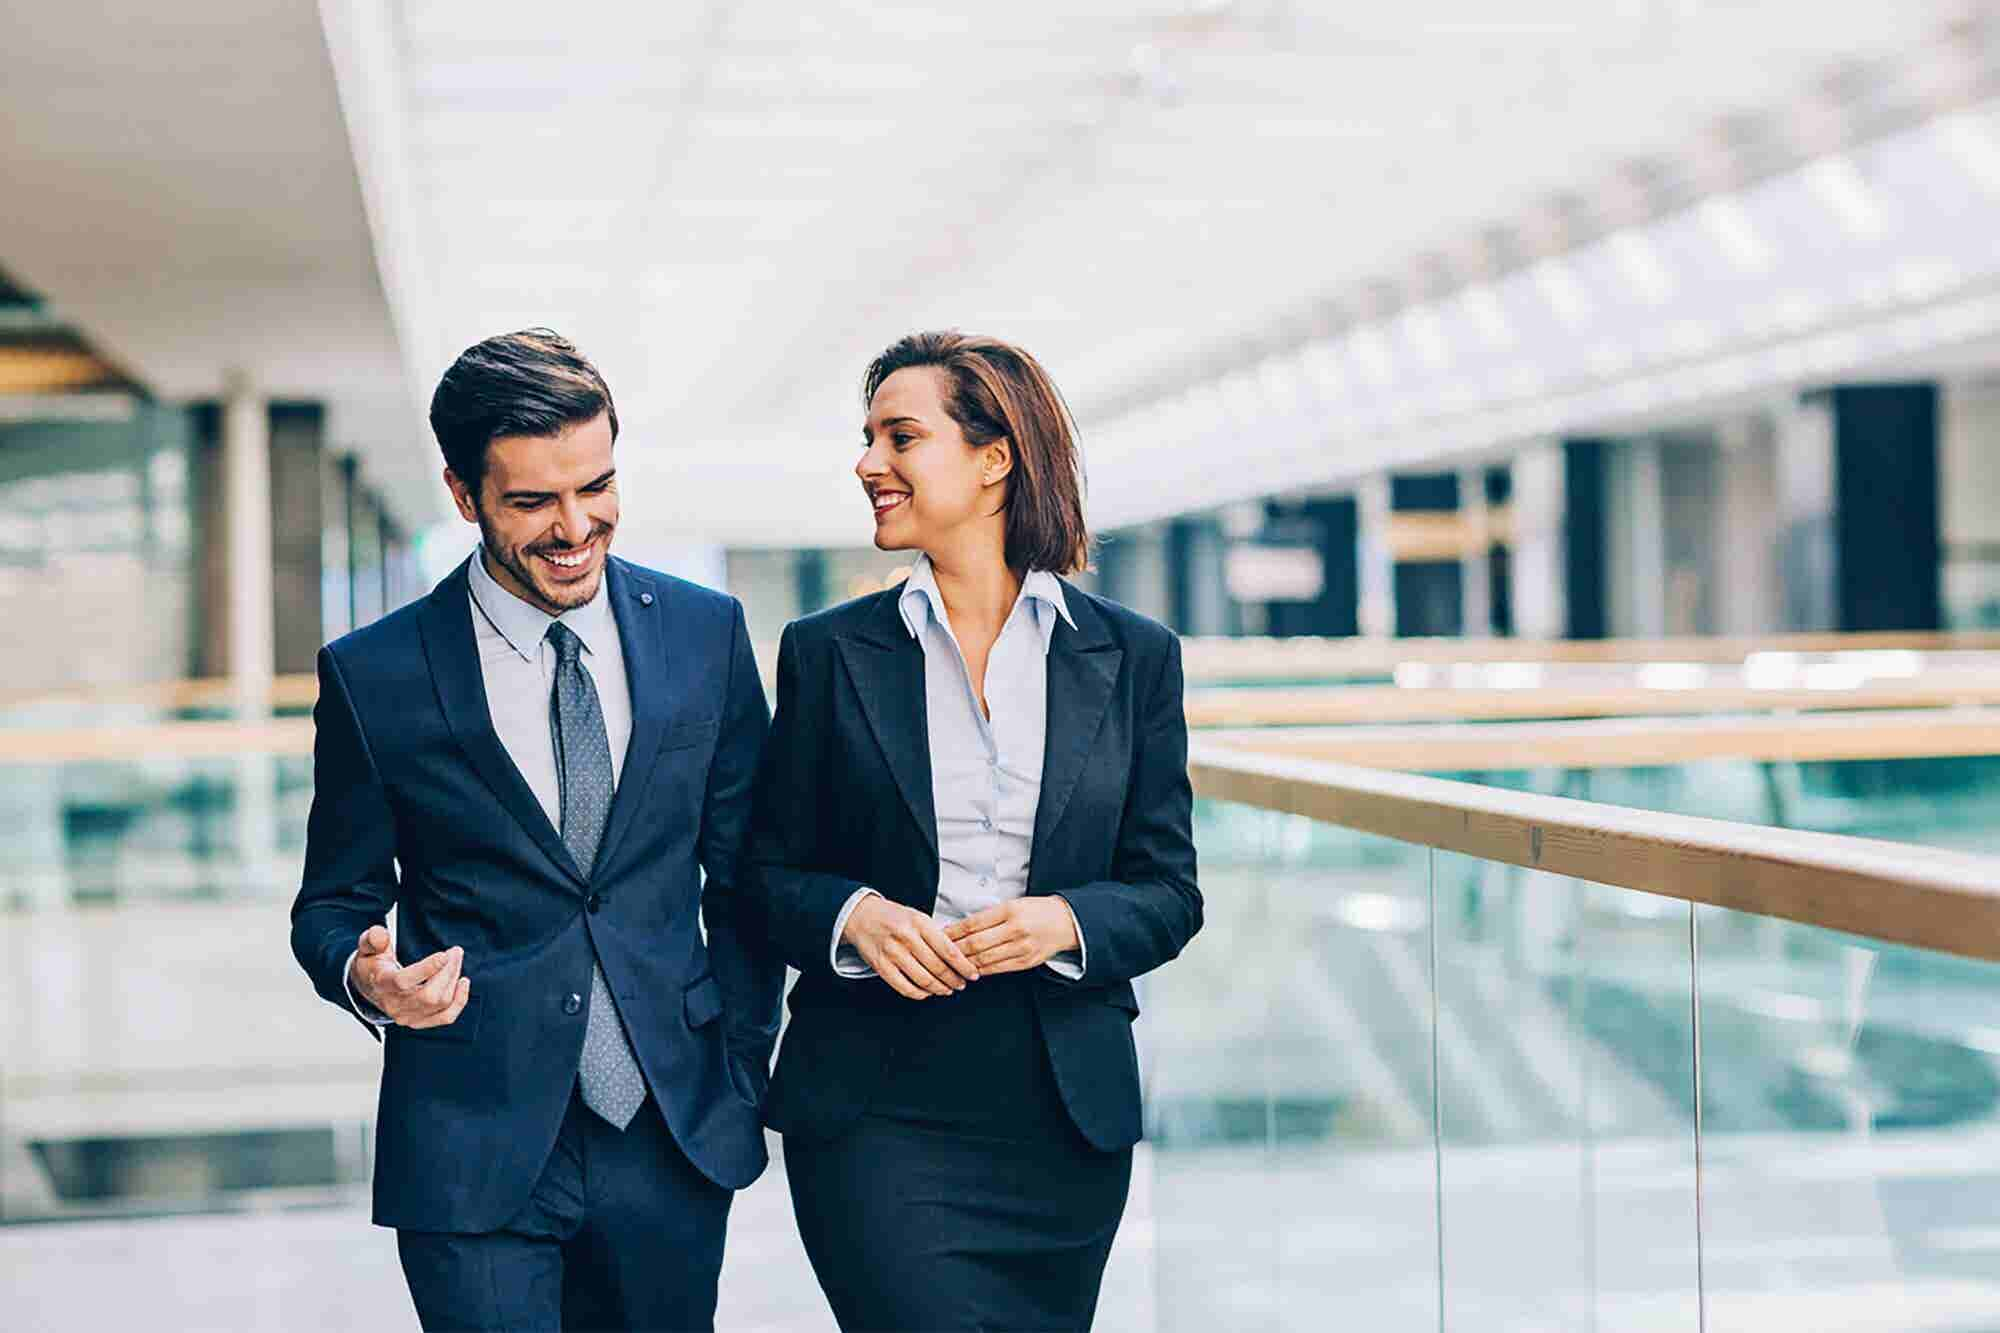 7 Perfect Questions to Ask While Networking